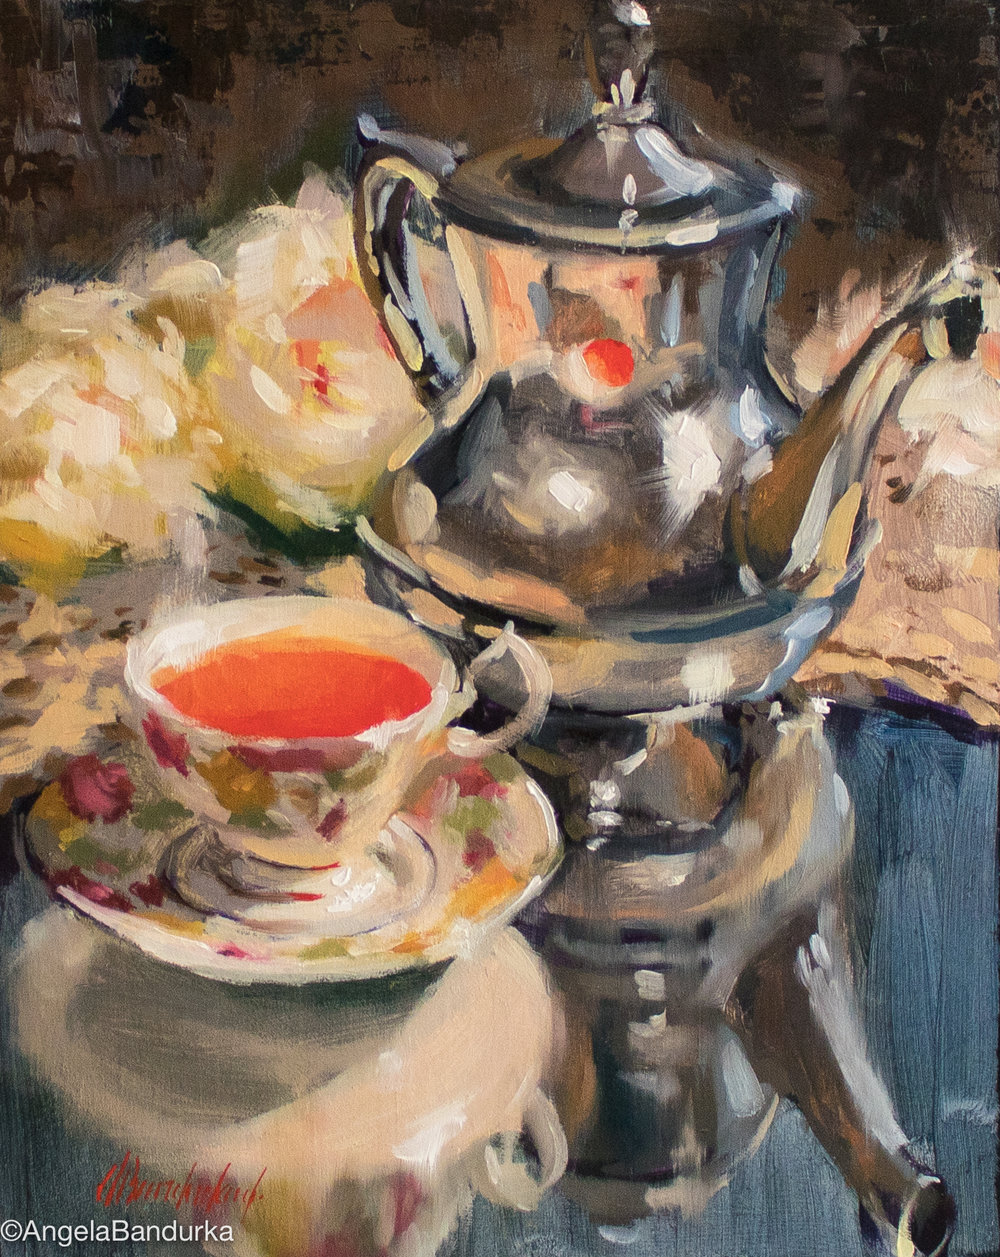 Heirloom Tea, 10x8, Oil